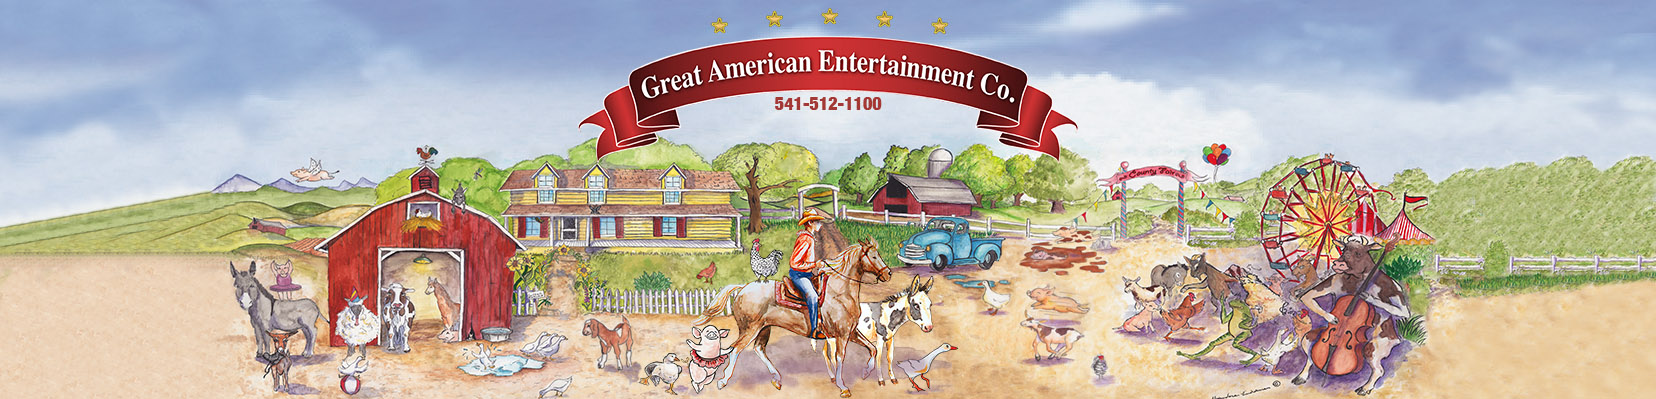 Great American Entertainment Co